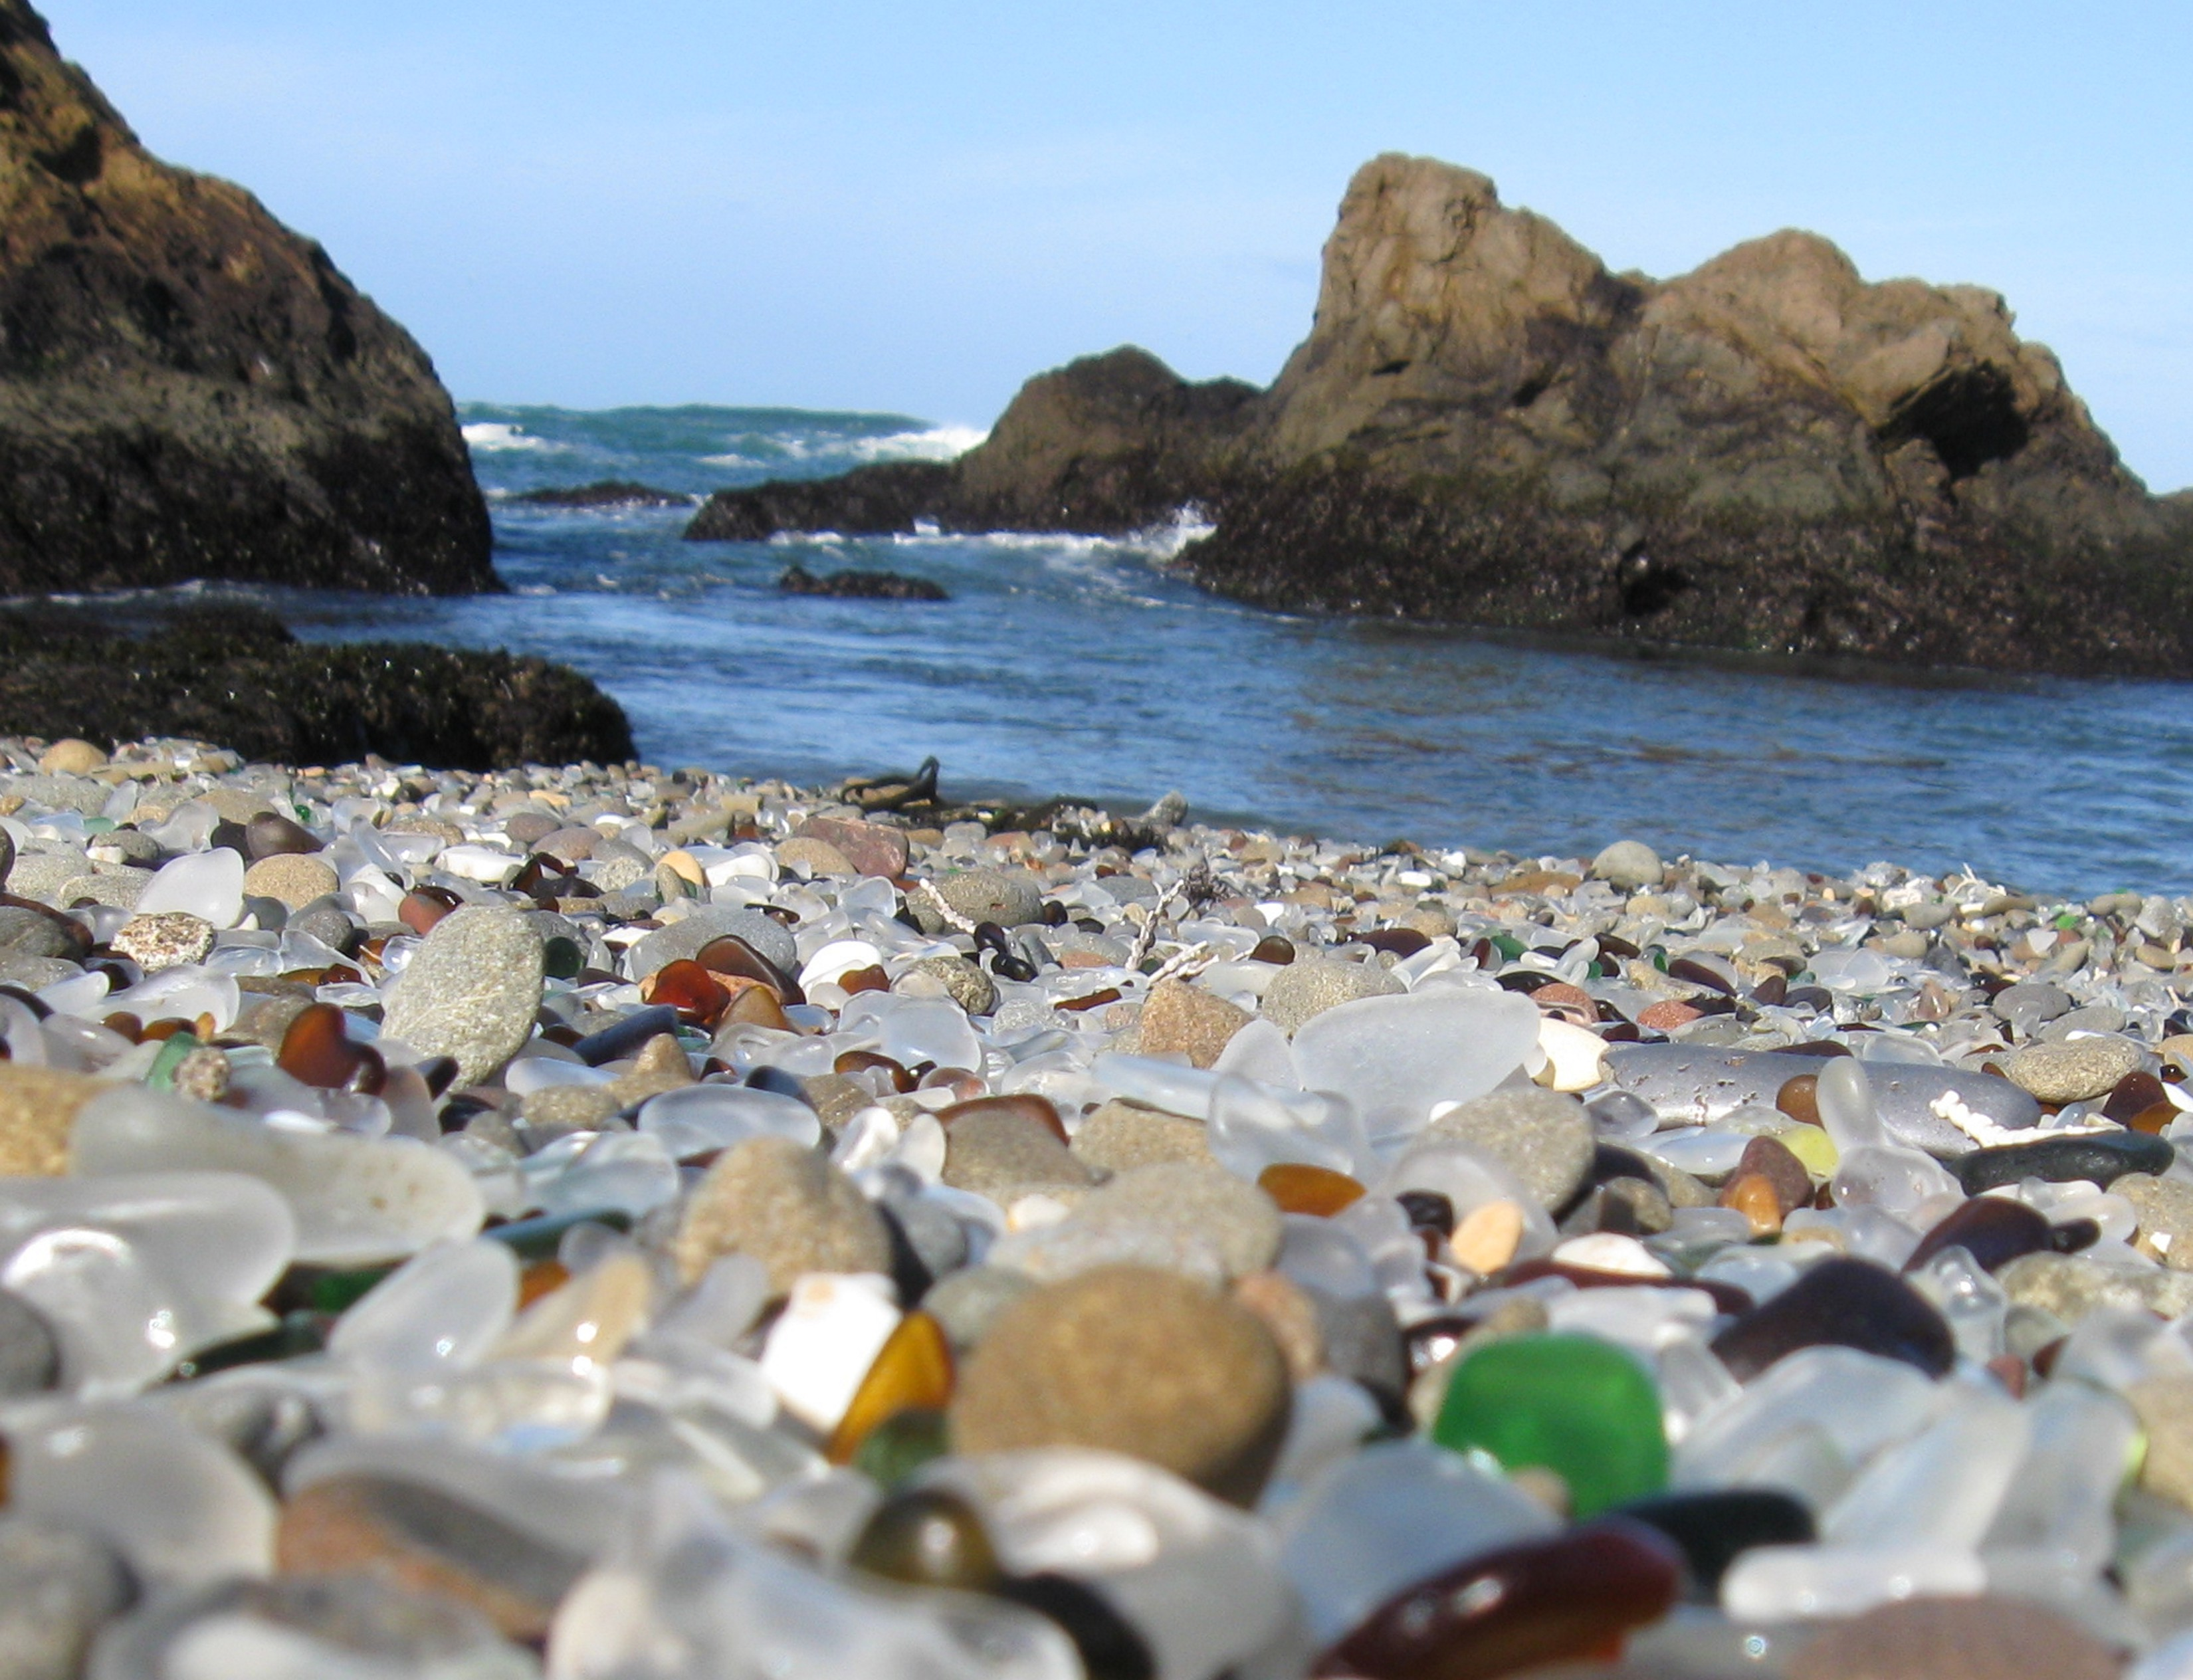 Forum on this topic: How to Collect Sea or Beach Glass, how-to-collect-sea-or-beach-glass/